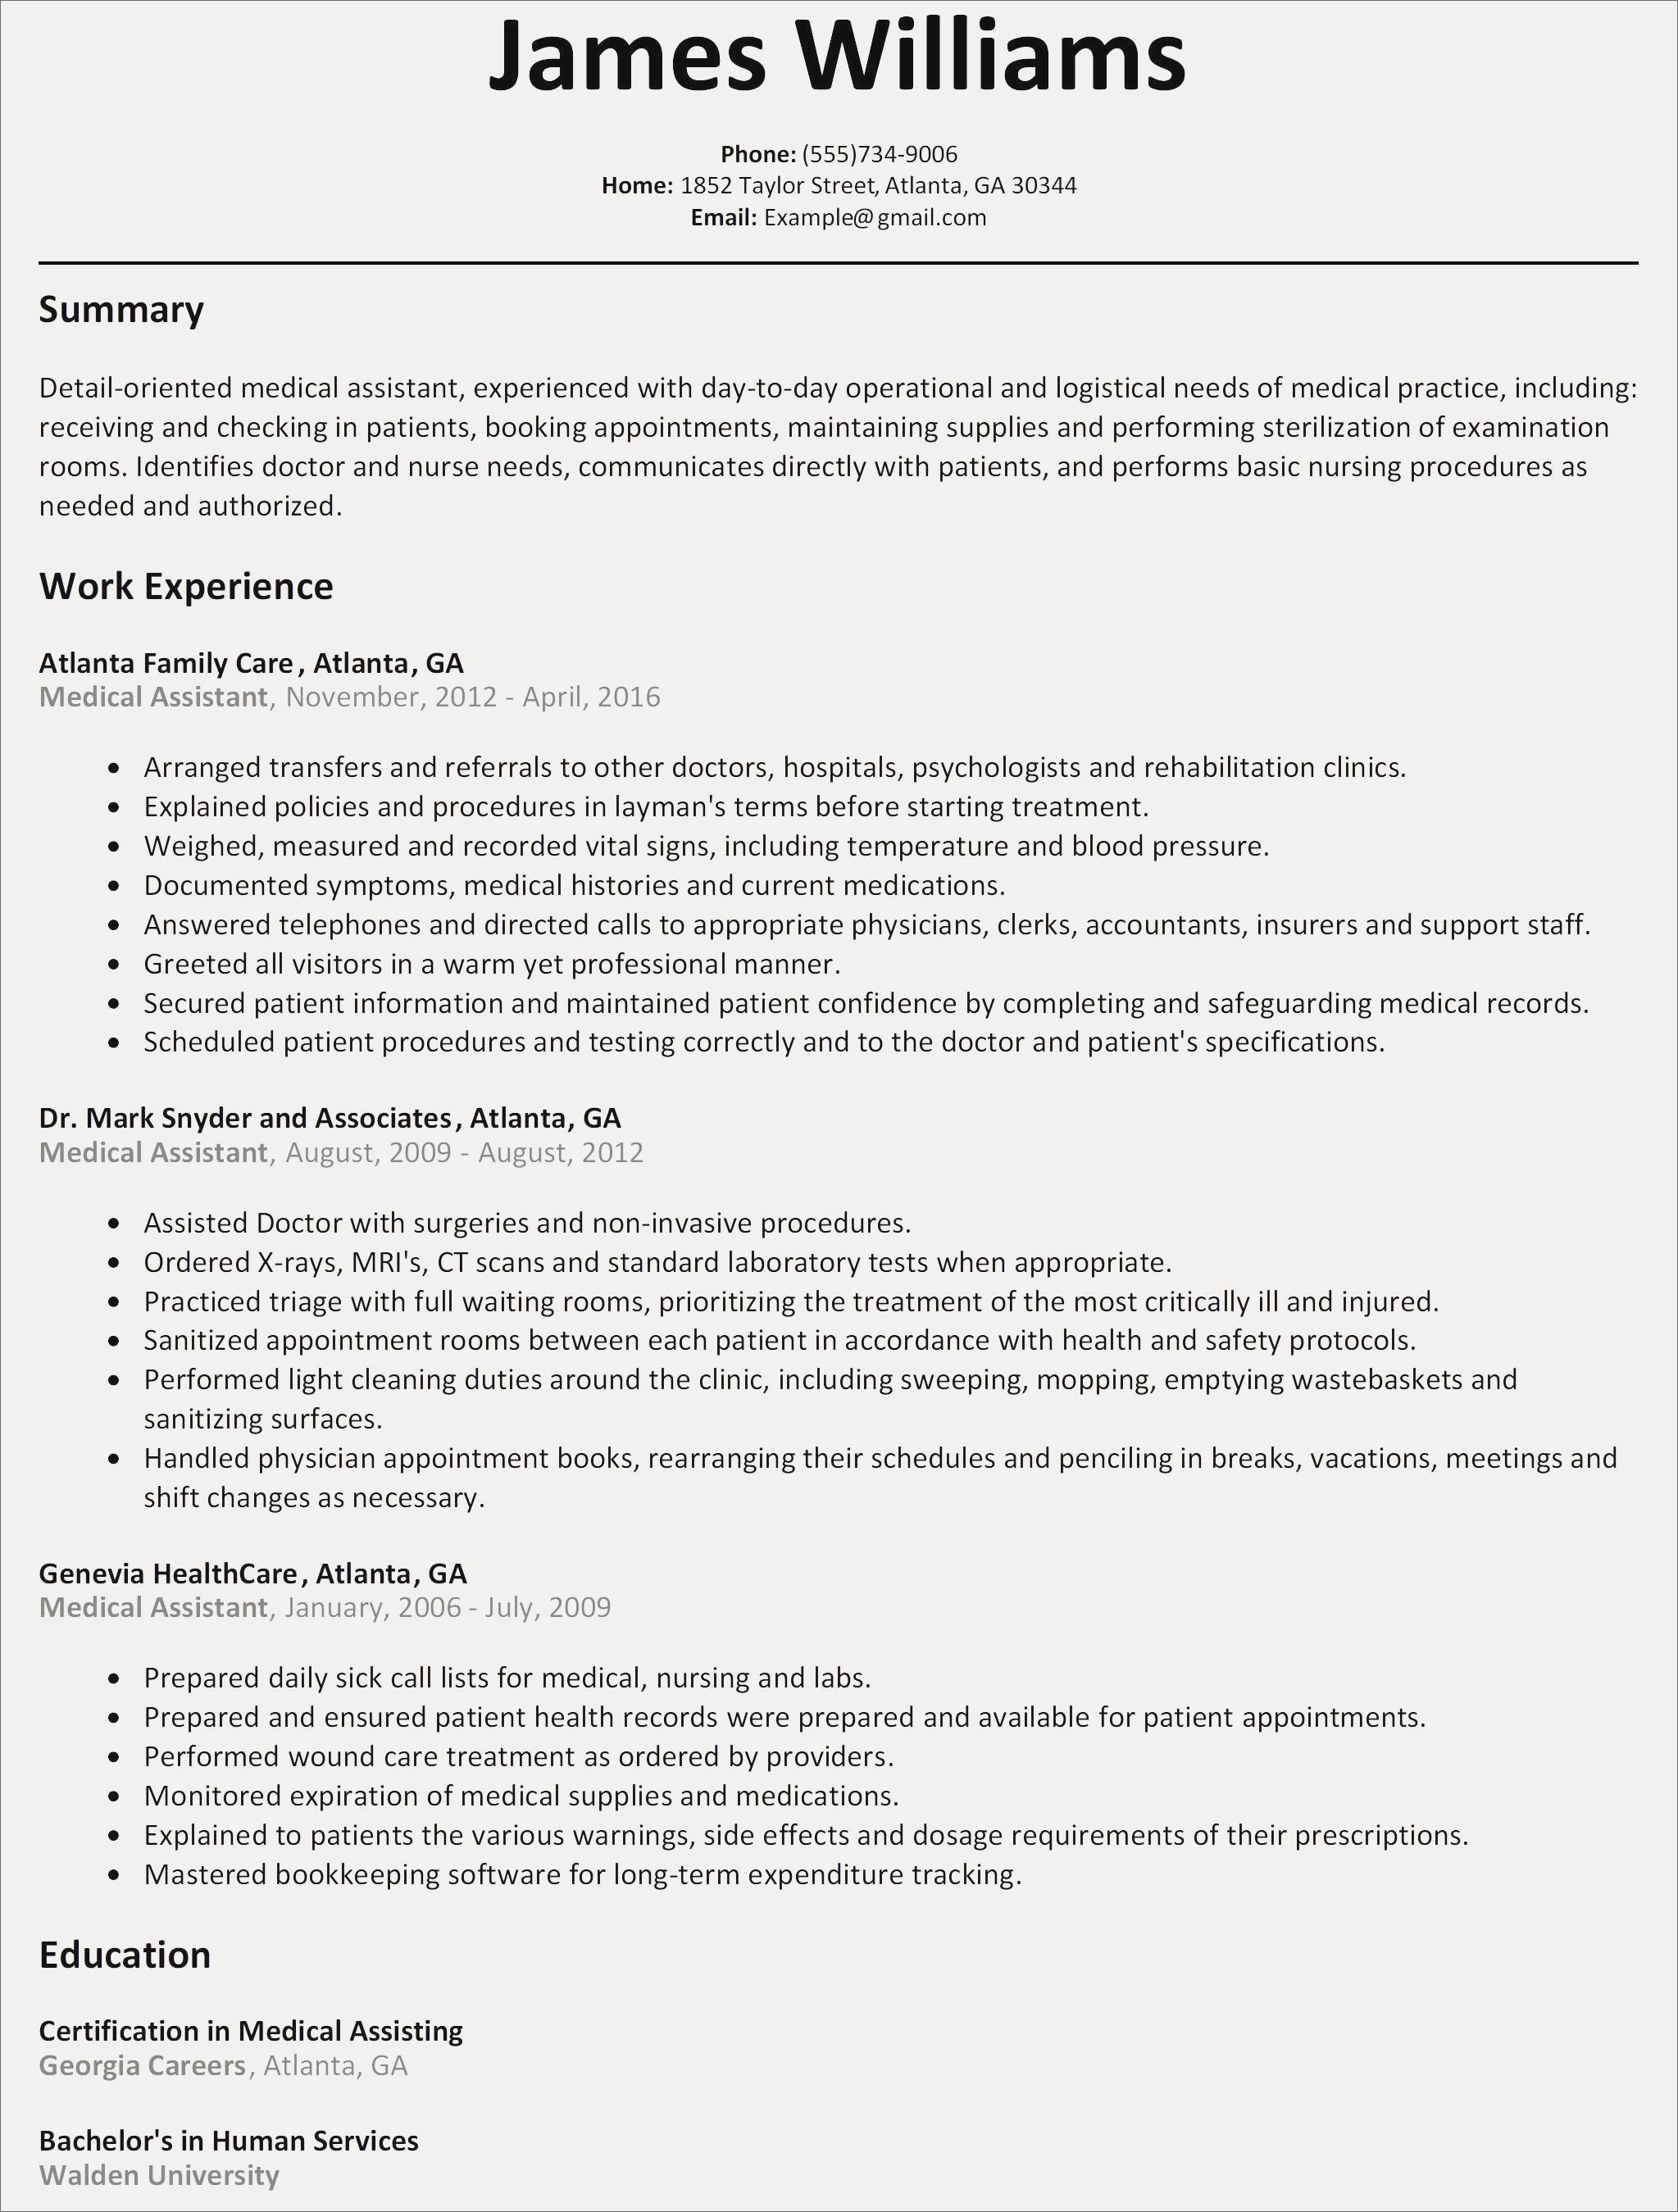 electronics engineer resume Collection-Electrical Engineer Resume Save Hr Resume Lovely Free Resume Examples Fresh Business Resume 0d 16-t